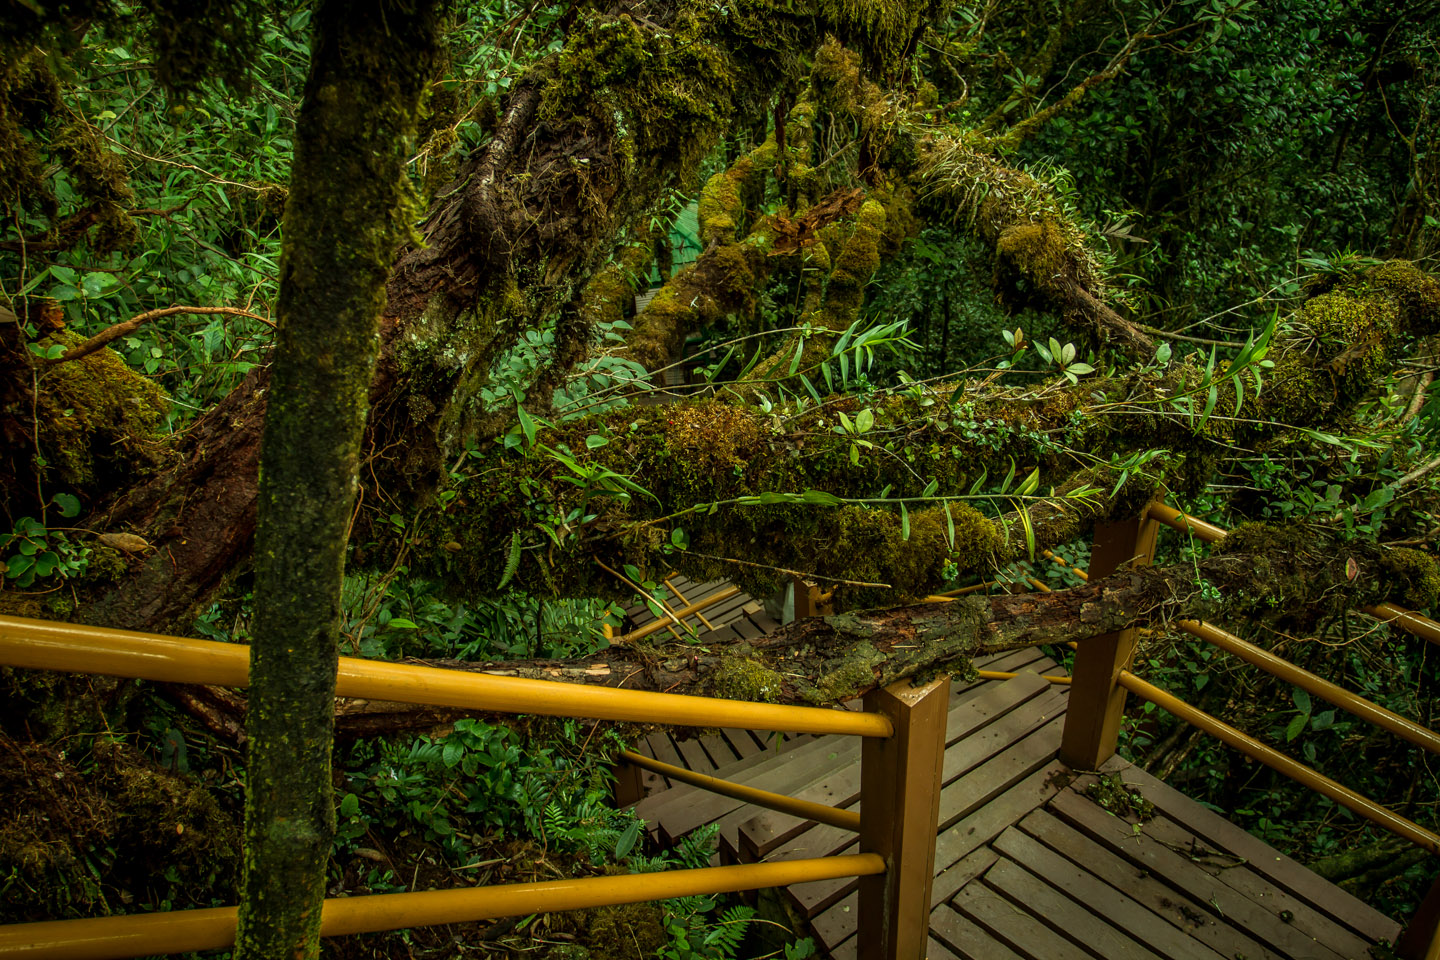 Nature and wildlife in Mossy Forest Mount Gunung Batu Brinchang